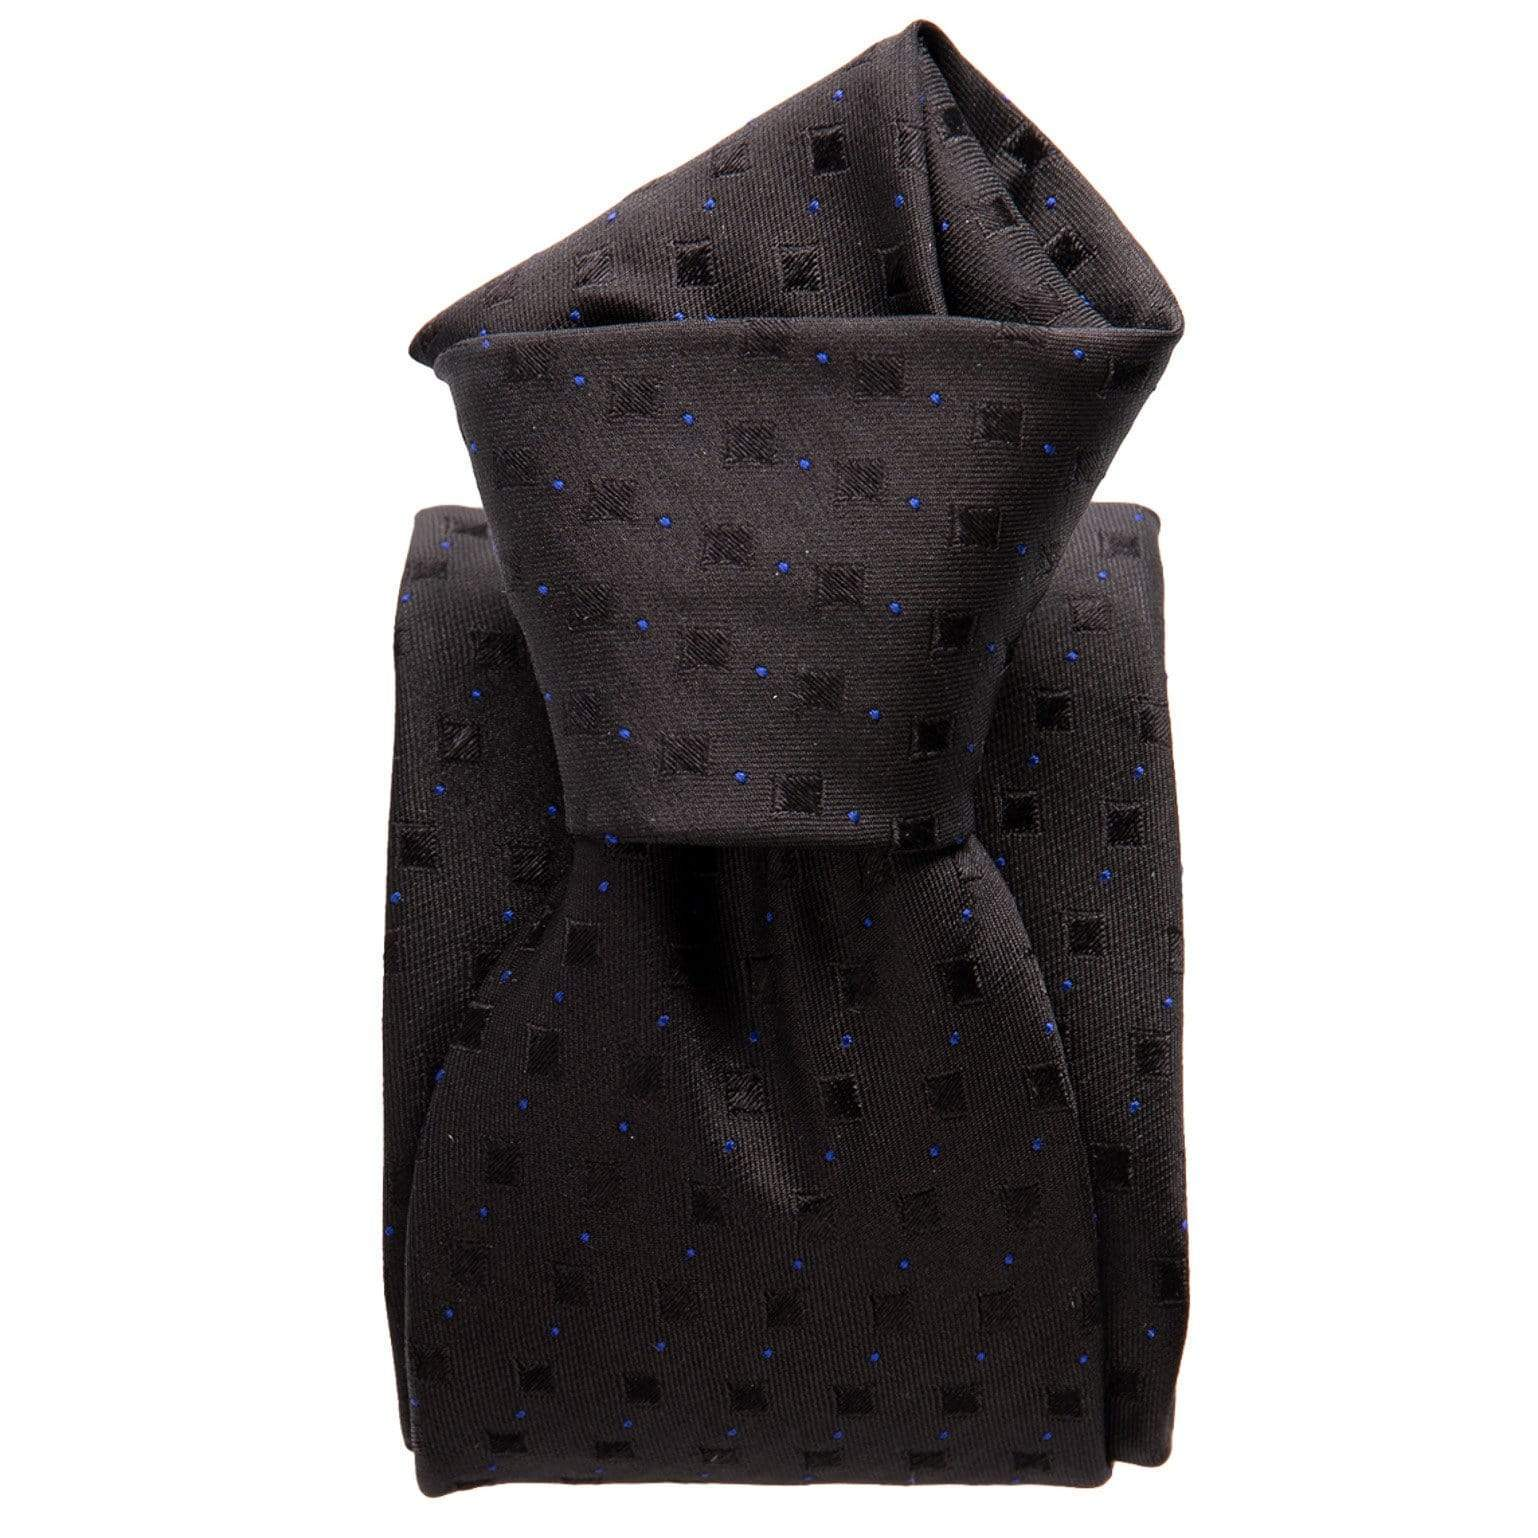 Black Woven Silk Tie - Three Fold - Made in Italy